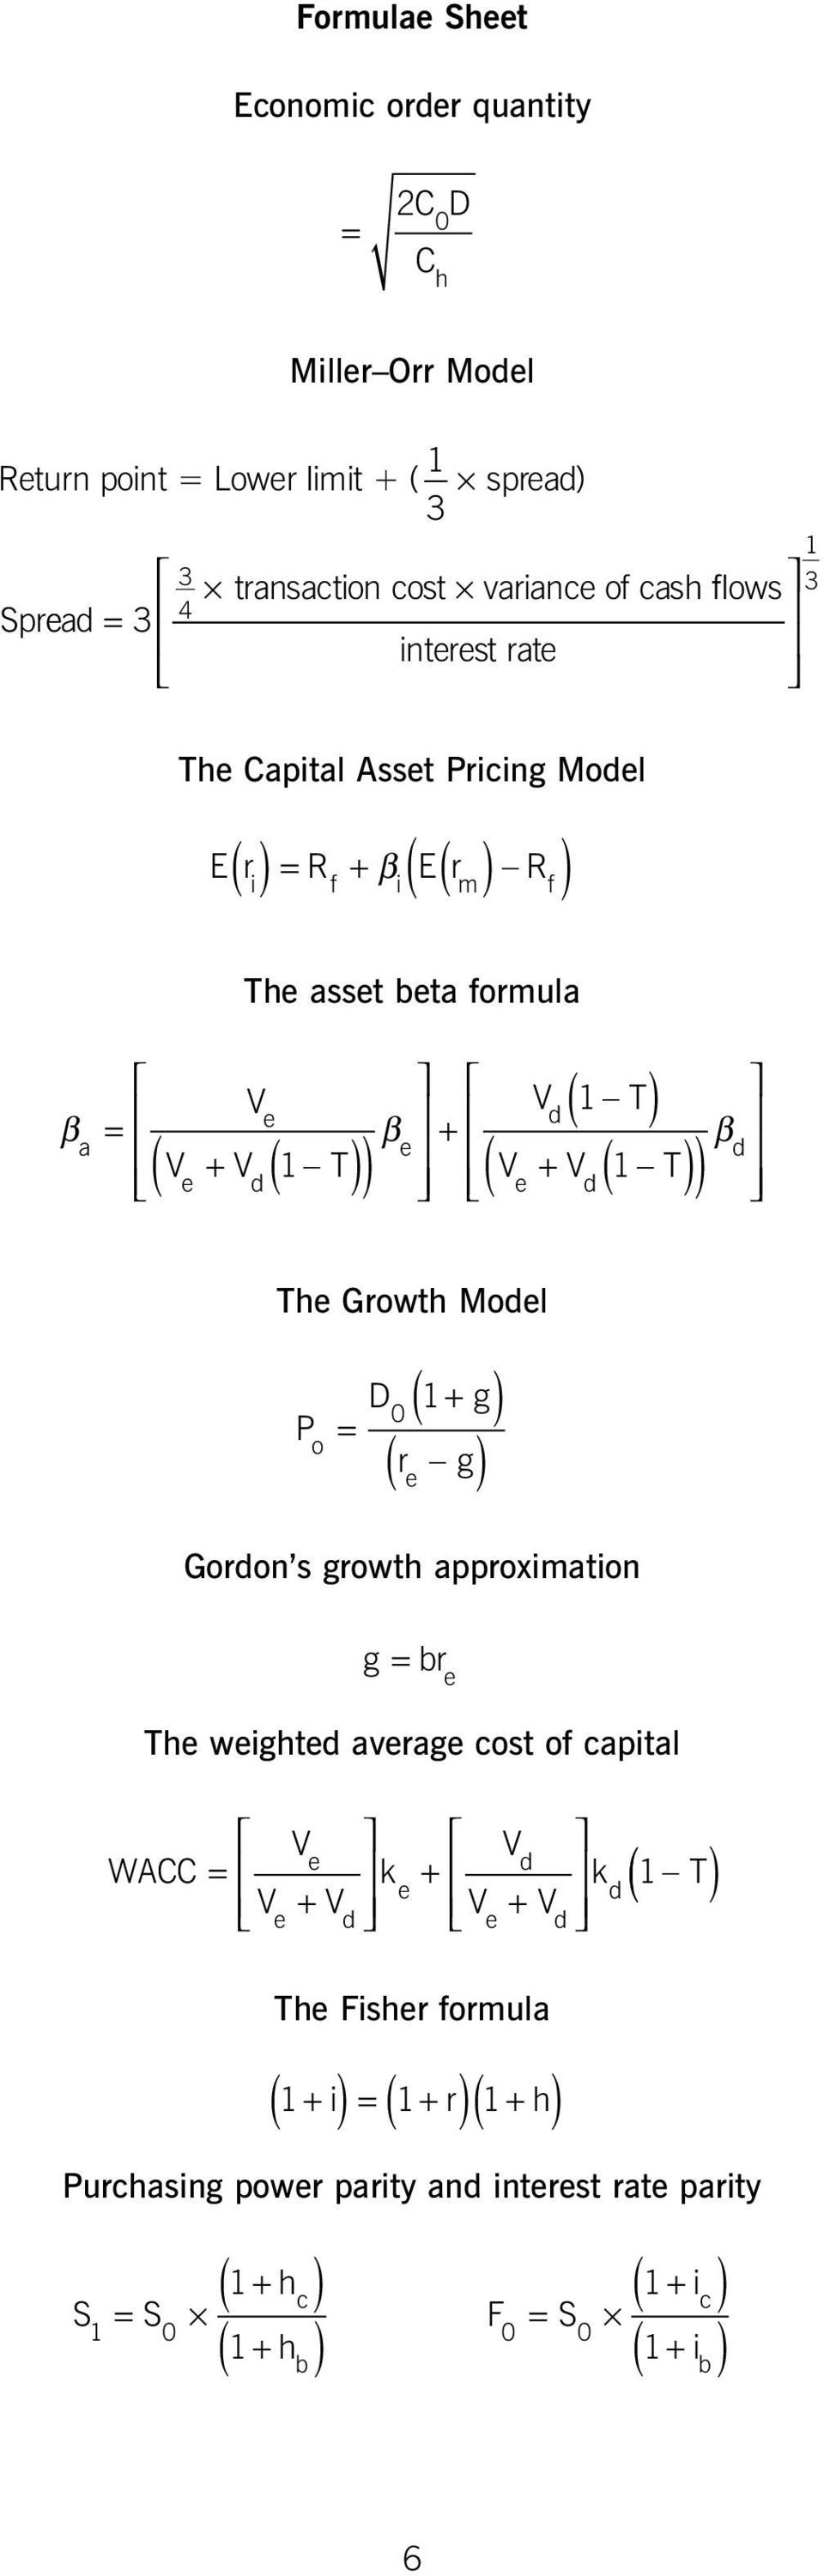 d( )) β d The Growth Model P o ( ) D + g 0 = 1 r g ( e ) Gordon s growth approximation g = br e The weighted average cost of capital V WACC V V k V e d = + V V k 1 T e d + e